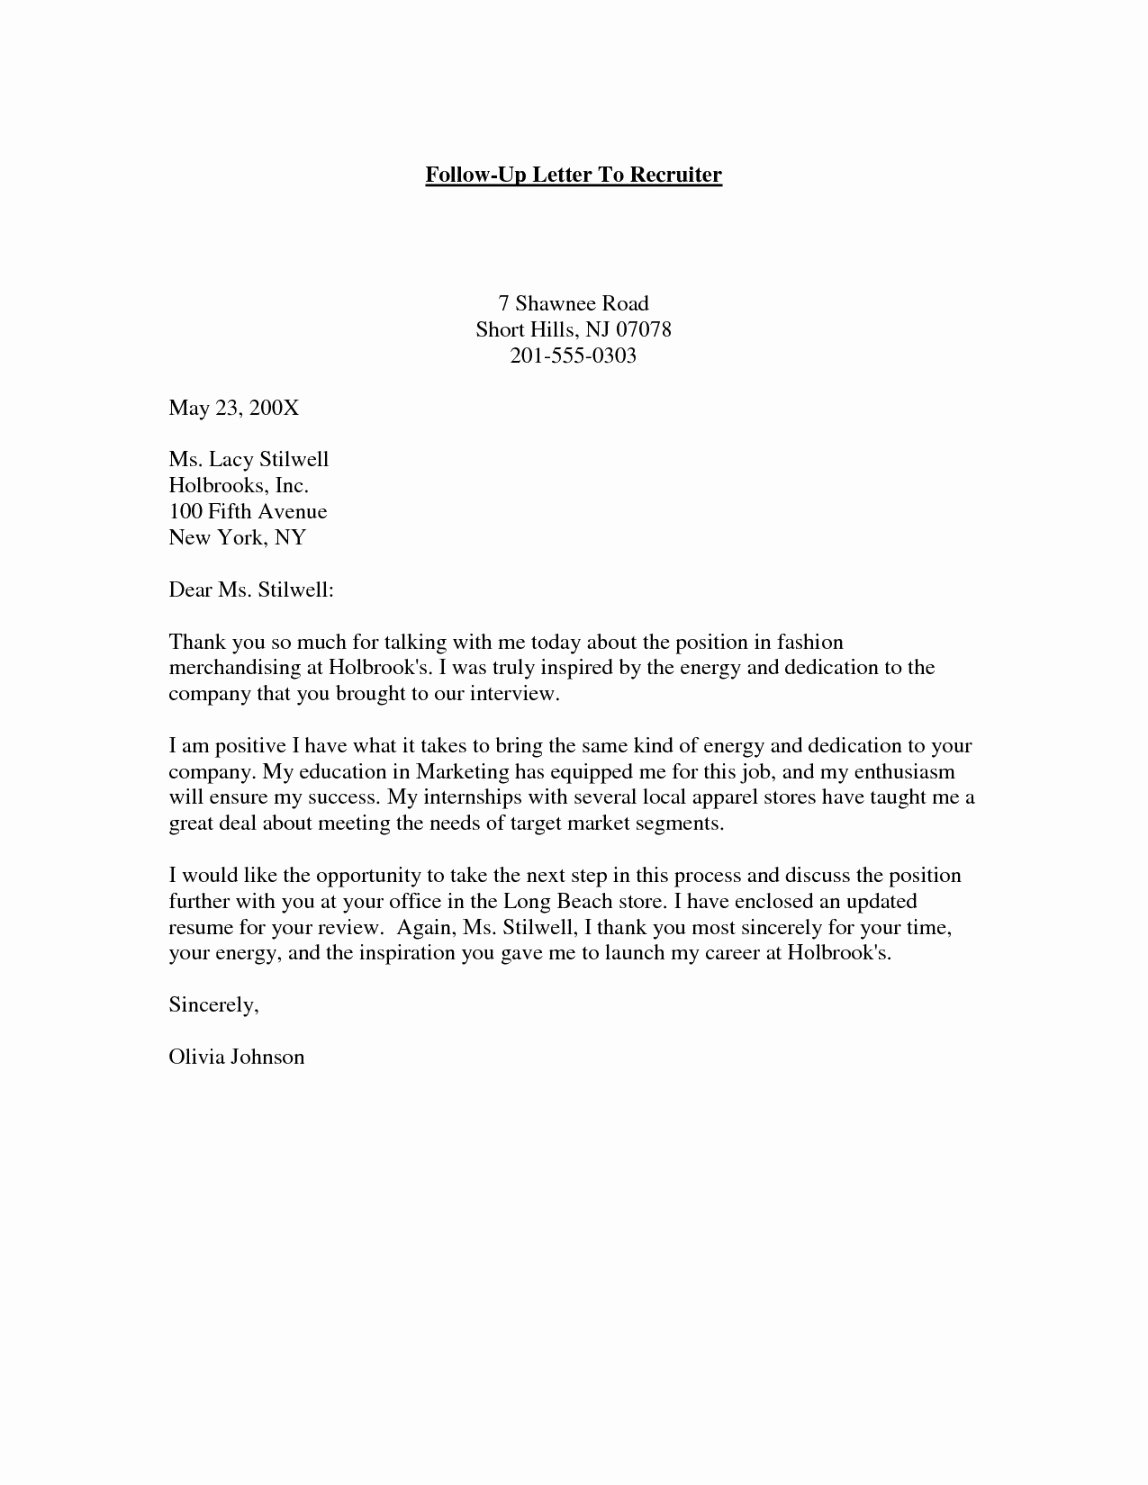 Sample Letters to Recruiters Lovely Hr Recruiter Cover Letter